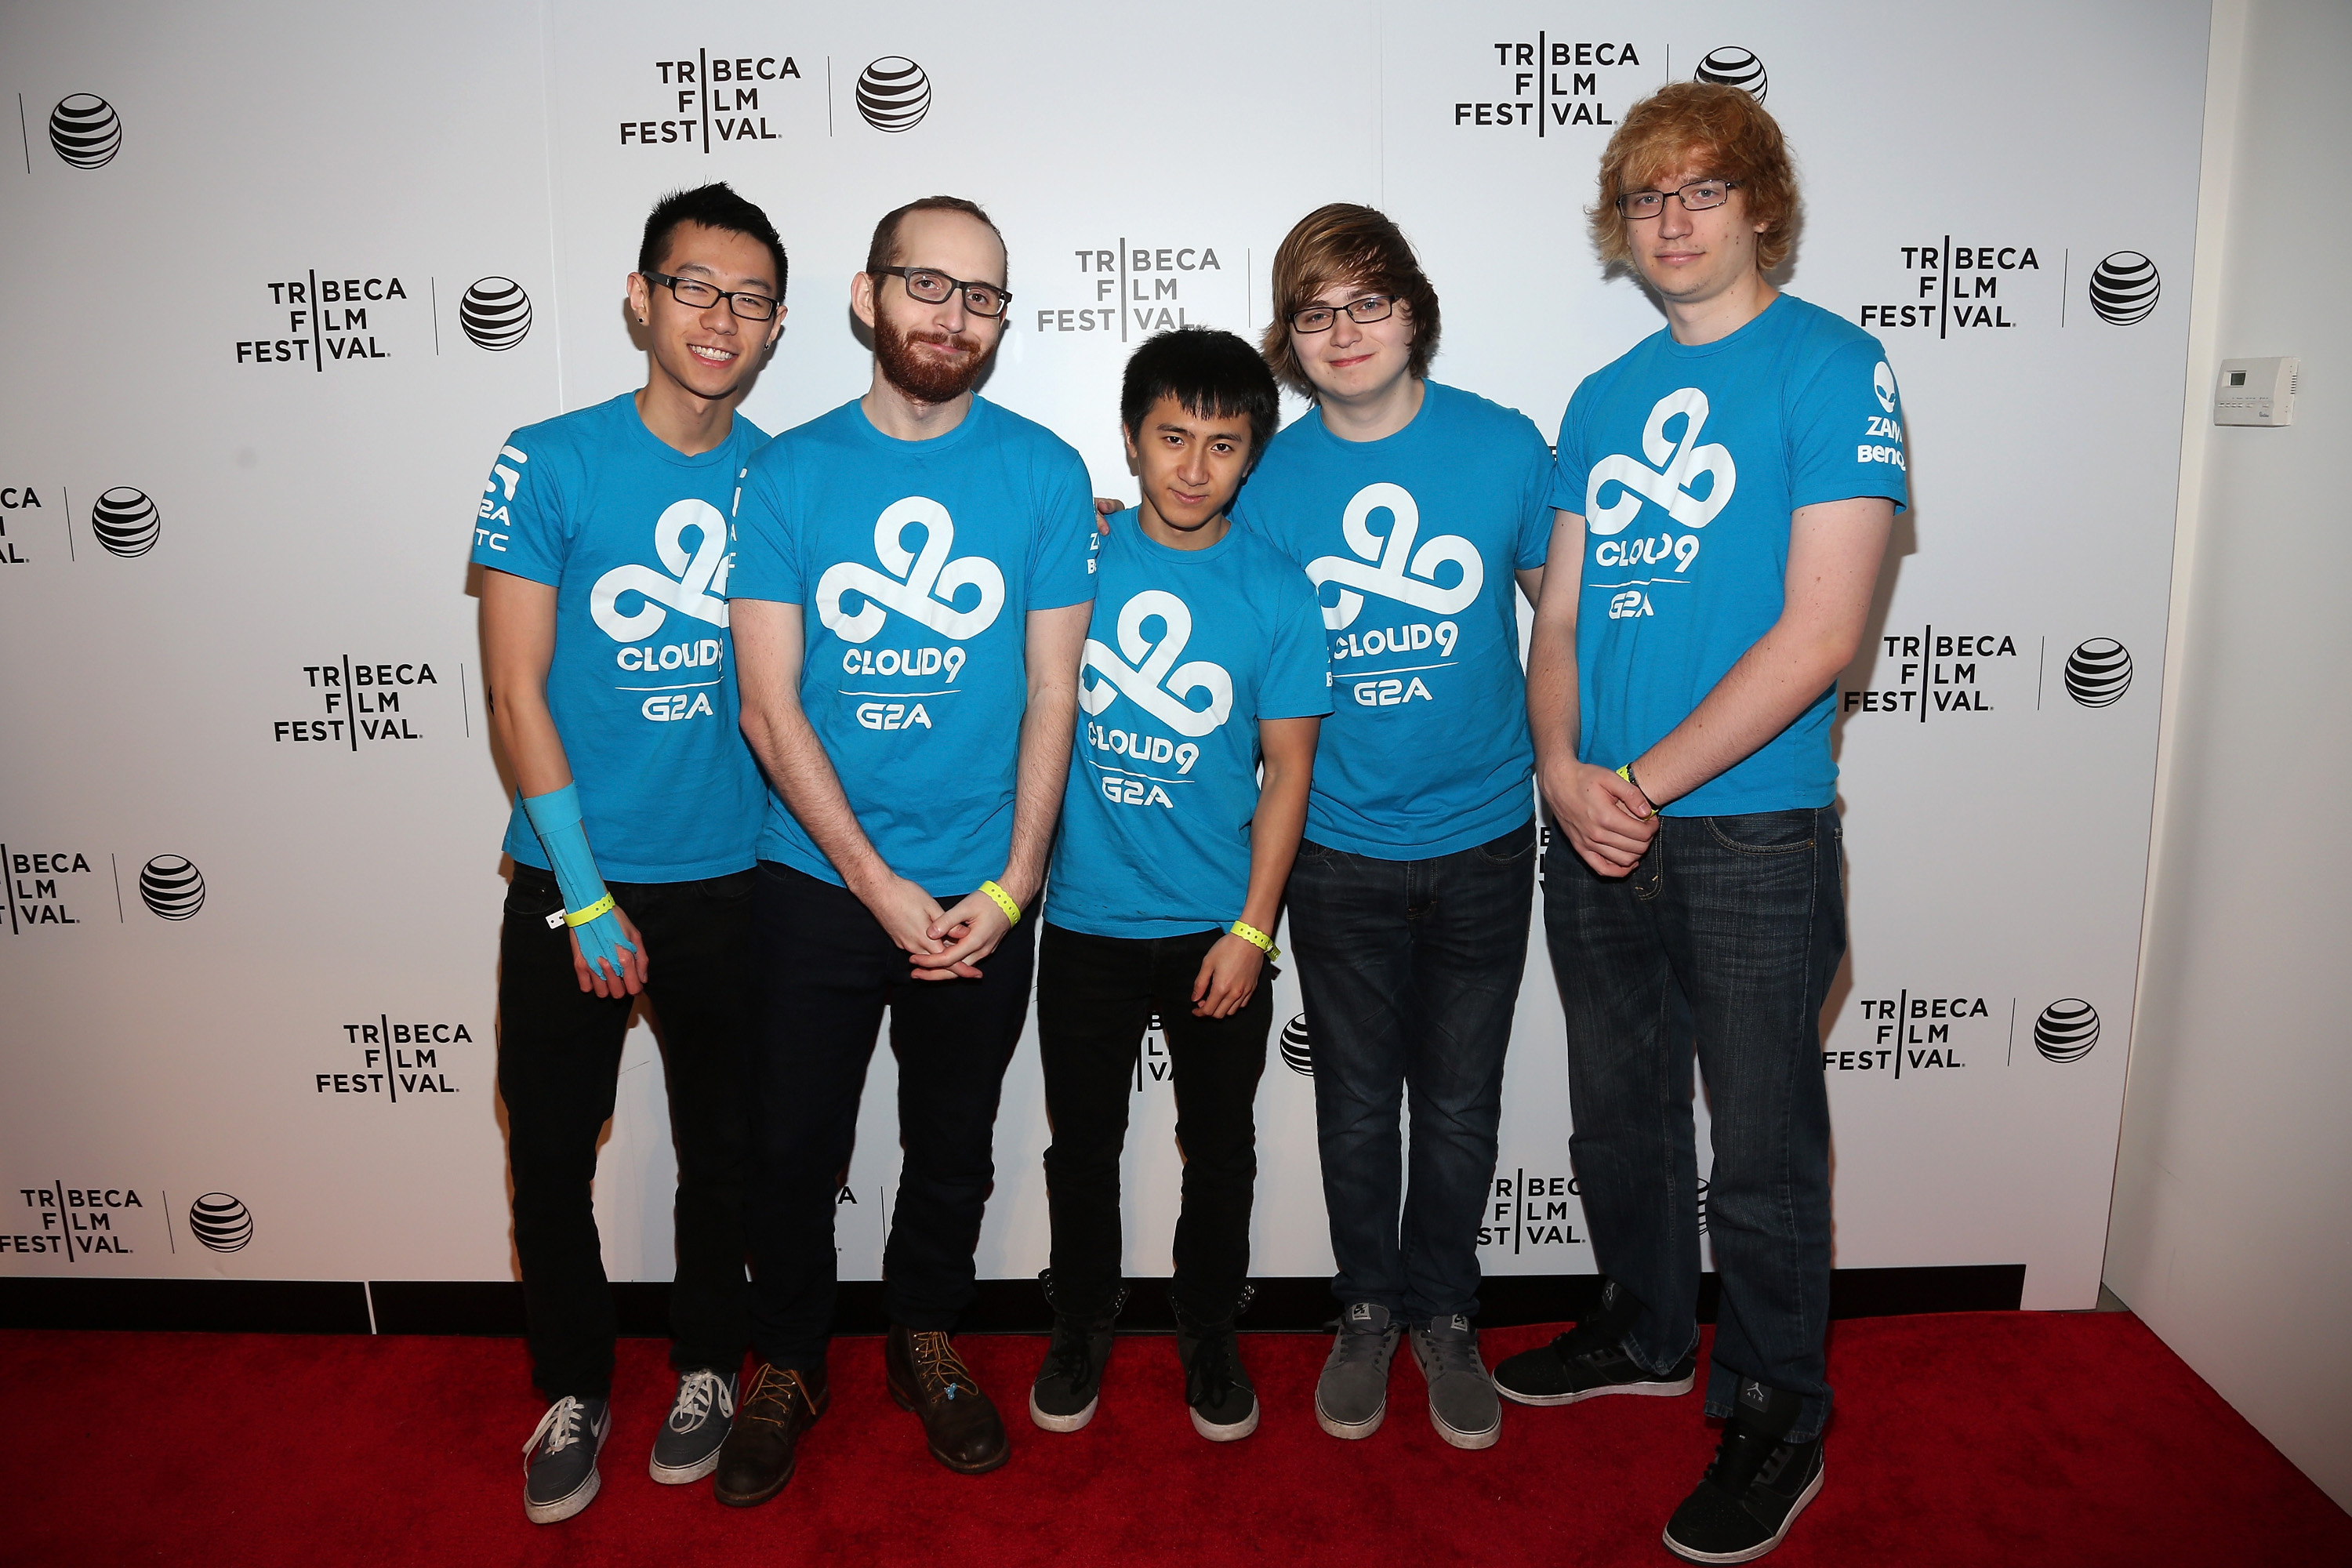 Hai Lam (L) and teammates attend the premiere of 'All Work All Play' during the 2015 Tribeca Film Festival at Spring Studio on April 20, 2015 in New York City.